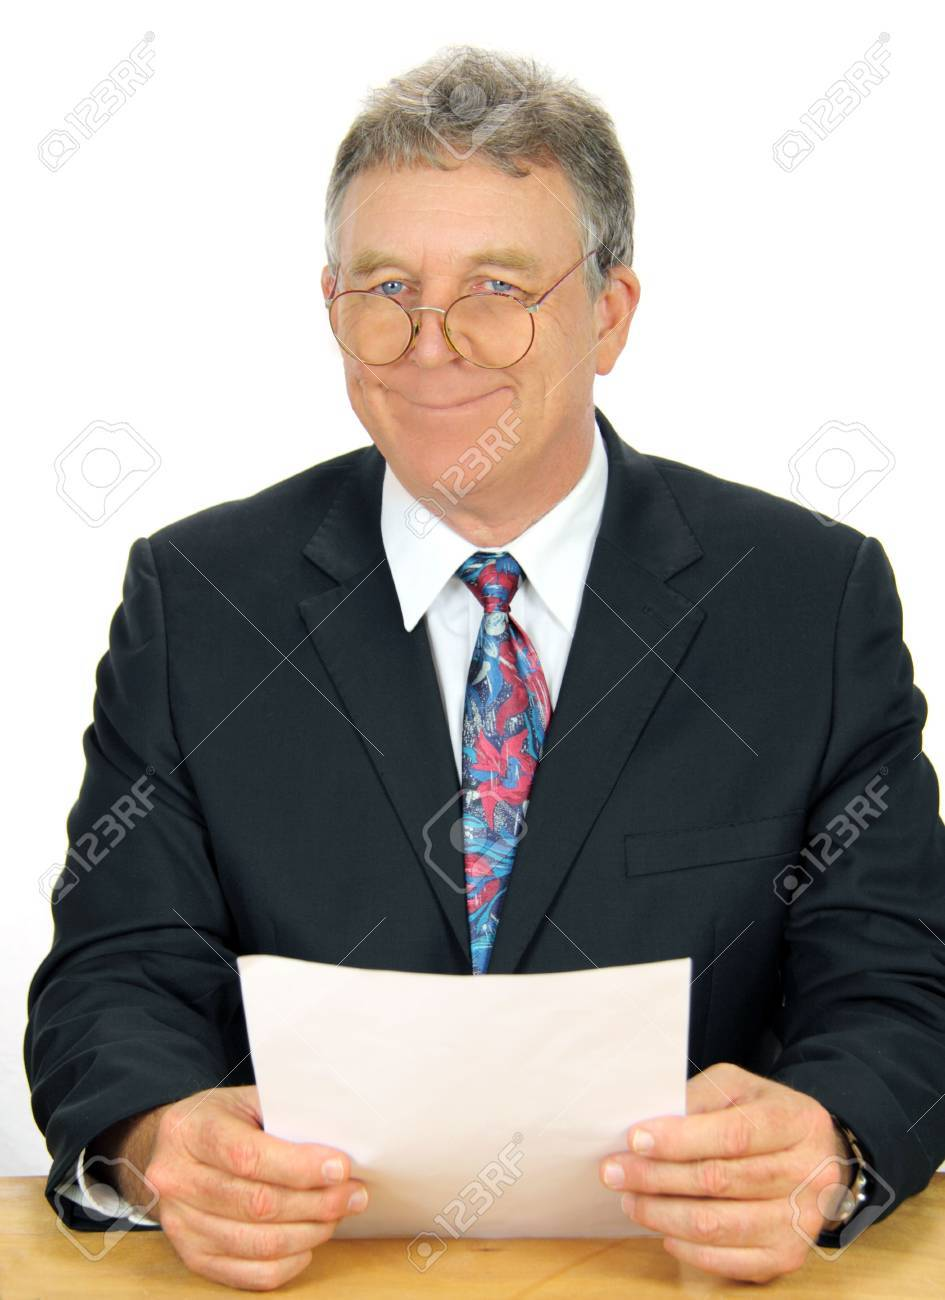 Geeky business executive smiles looking over his old fashioned glasses. Stock Photo - 5295030